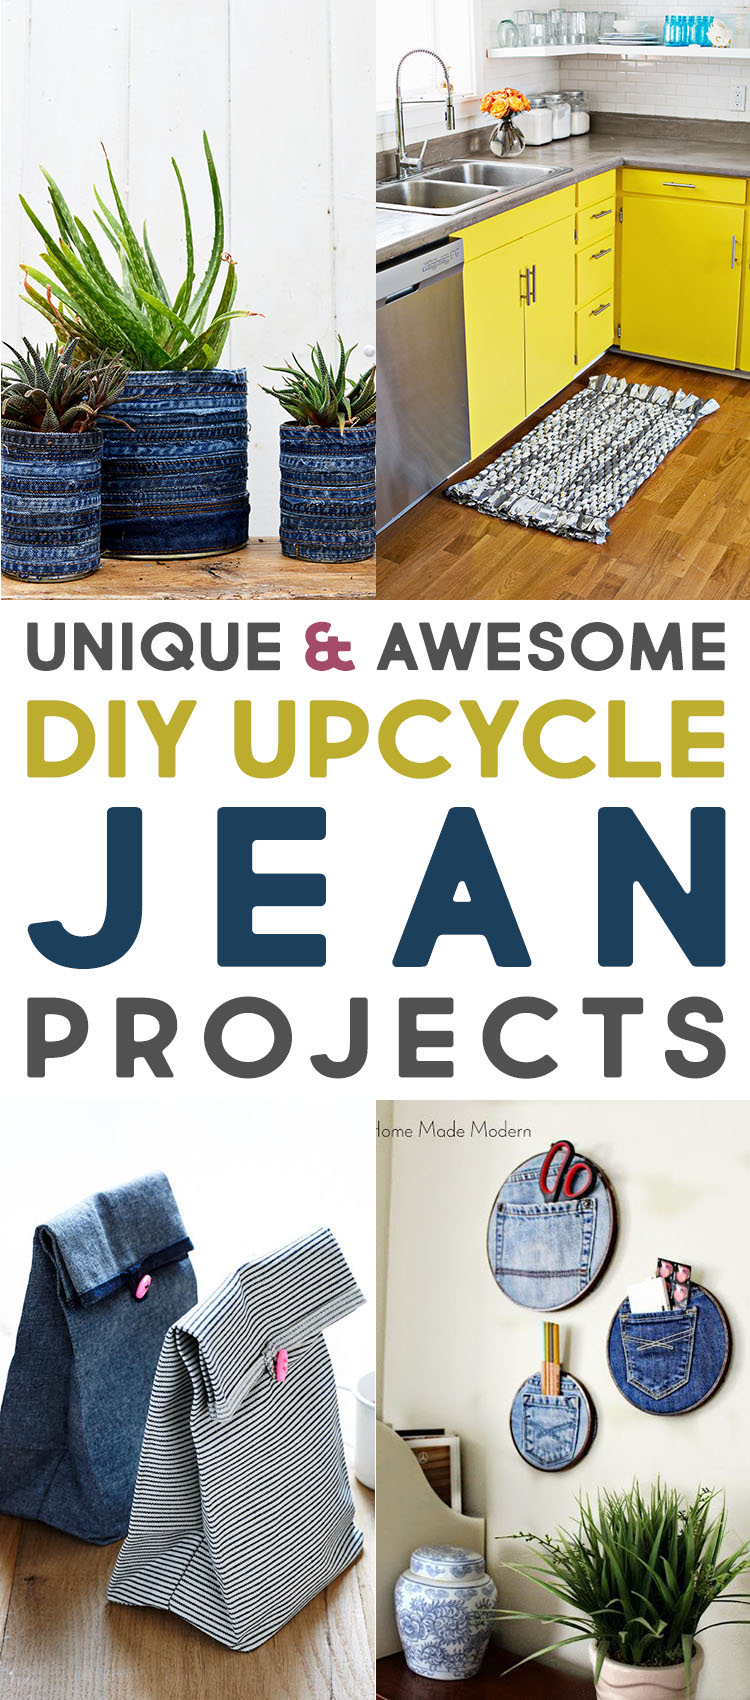 Unique and Awesome DIY Upcycle Jean Projects